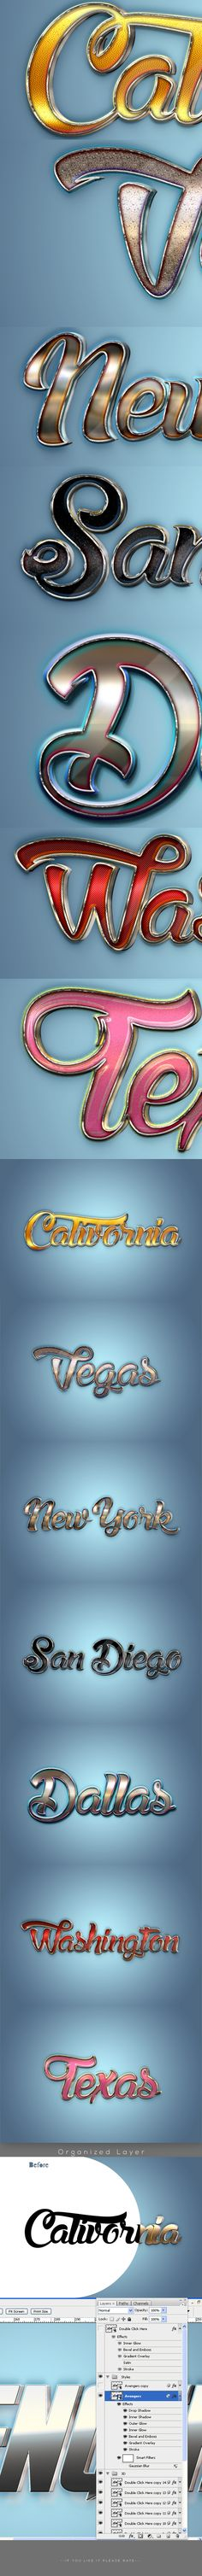 #3D Text Styles V05-08-16 - Text Effects #Actions Download here: https://graphicriver.net/item/3d-text-styles-v050816/18011594?ref=alena994